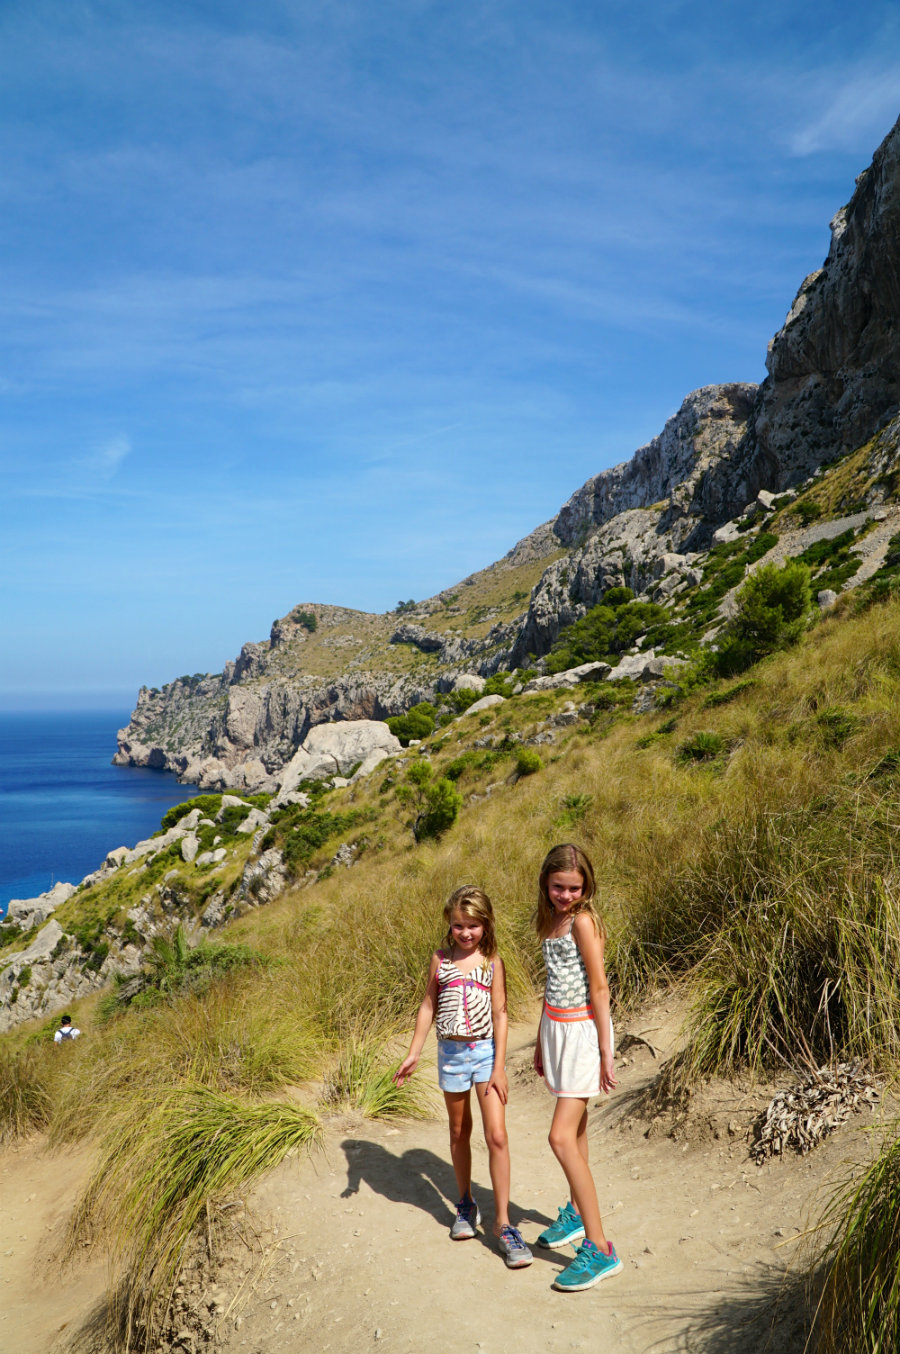 New year refelction on 2017 family vacation to Mallorca.